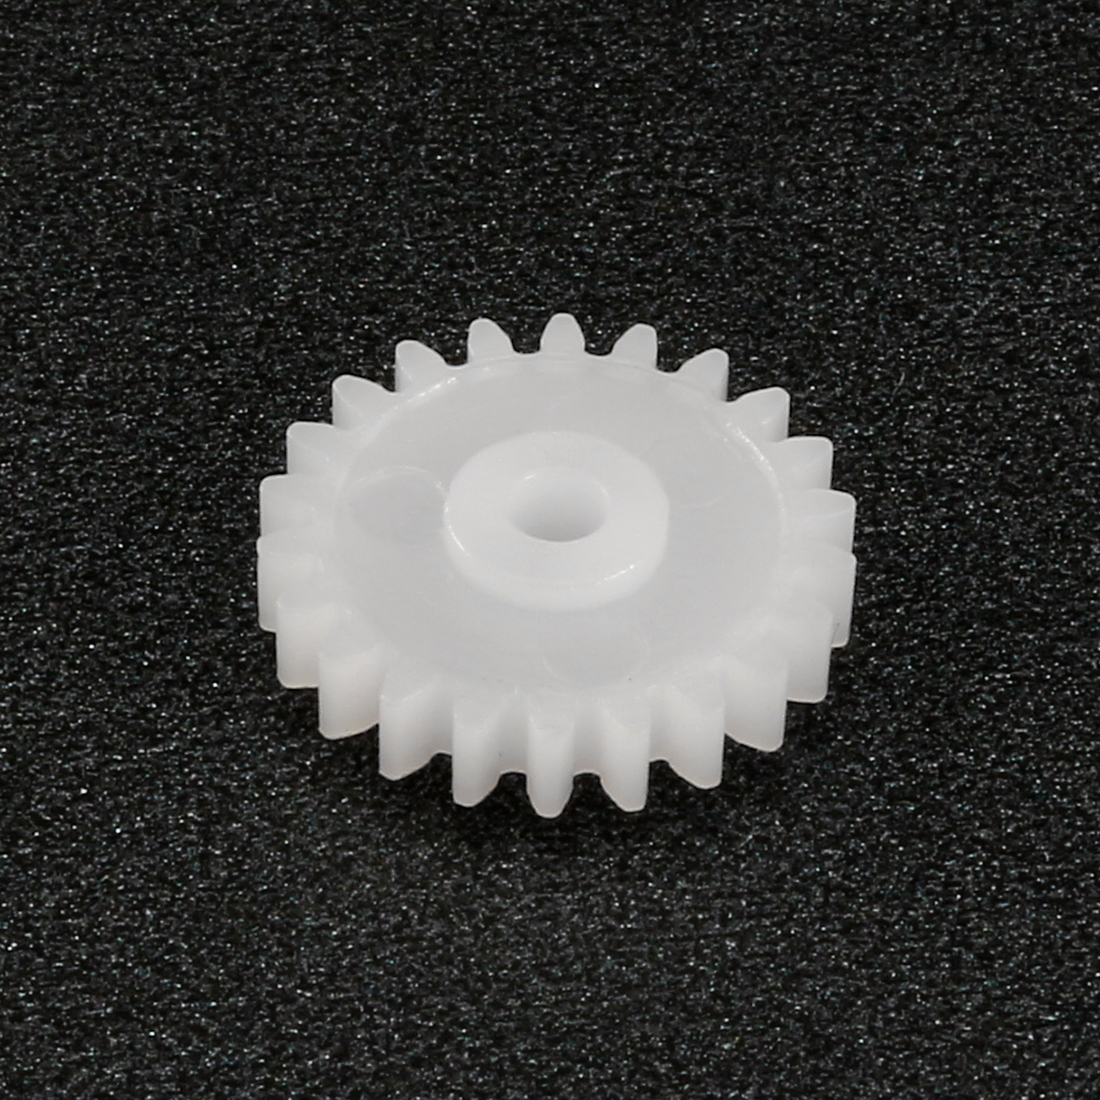 uxcell 50pcs Plastic Gears 20 Teeth Model C202A Reduction Gear Plastic Worm Gears for RC Car Robot Motor